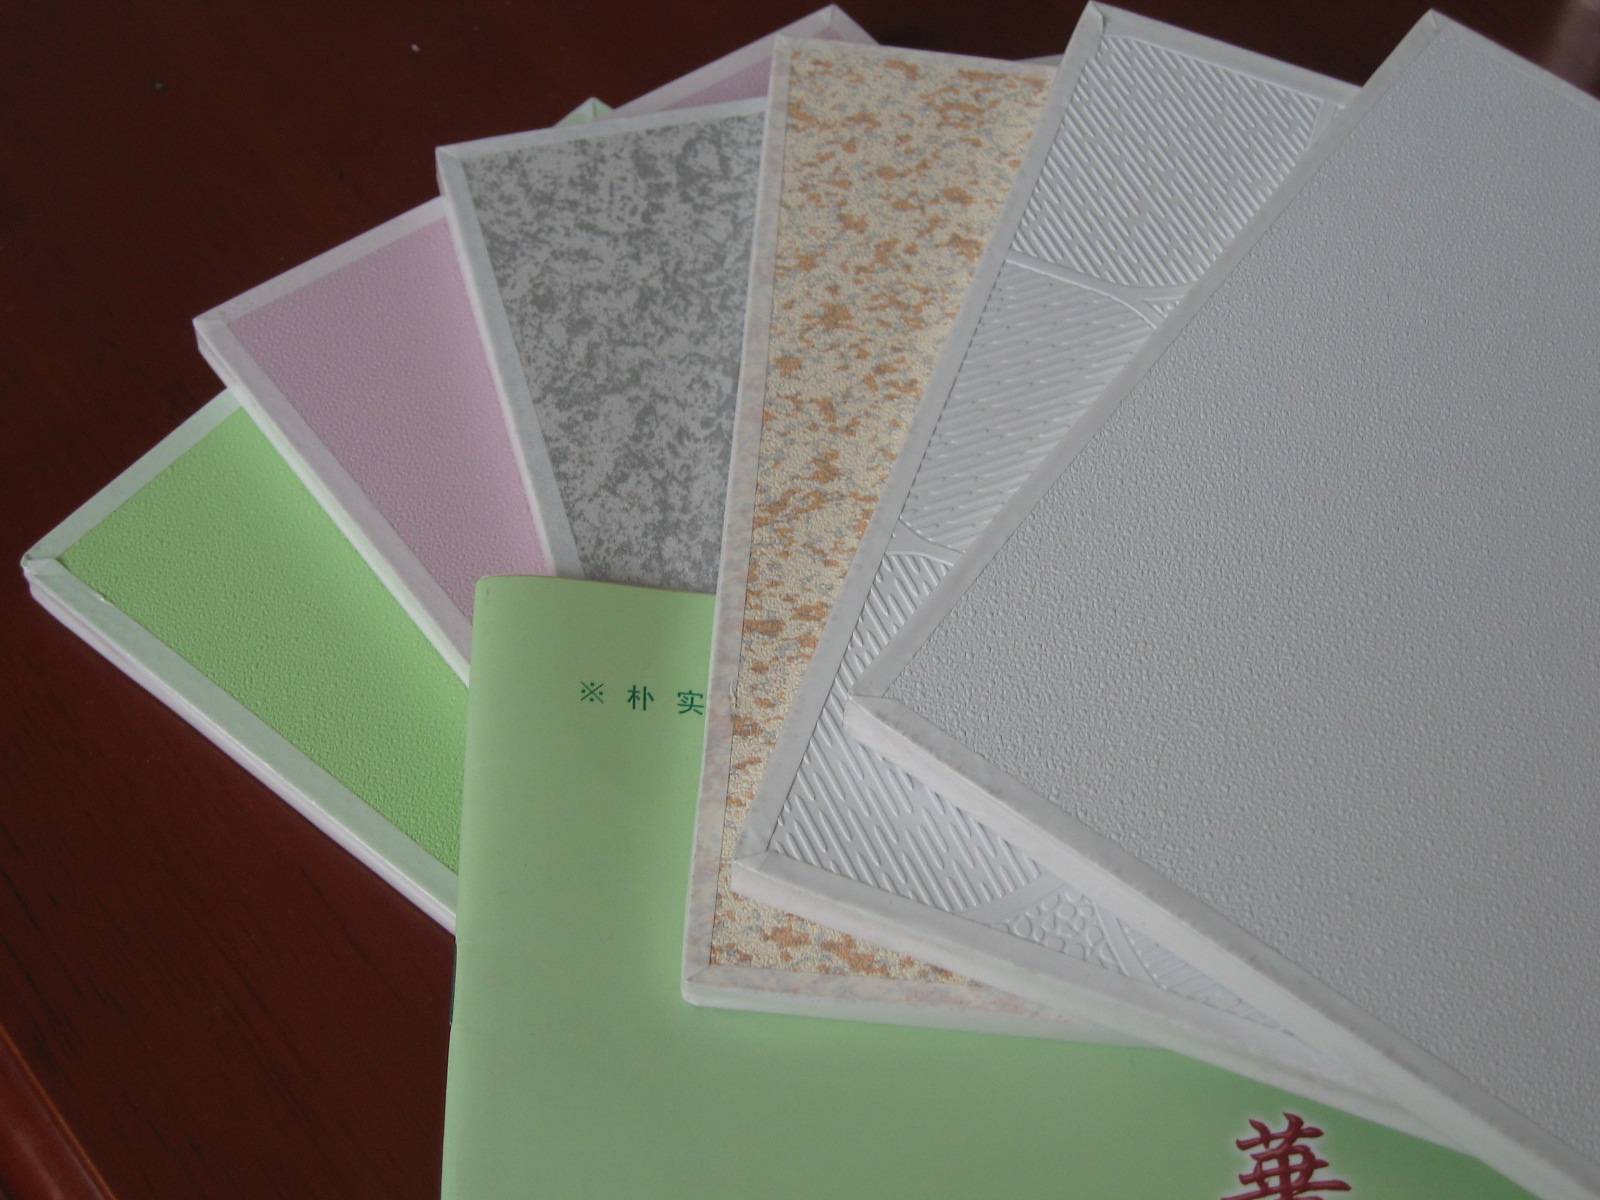 PVC gypsum boards